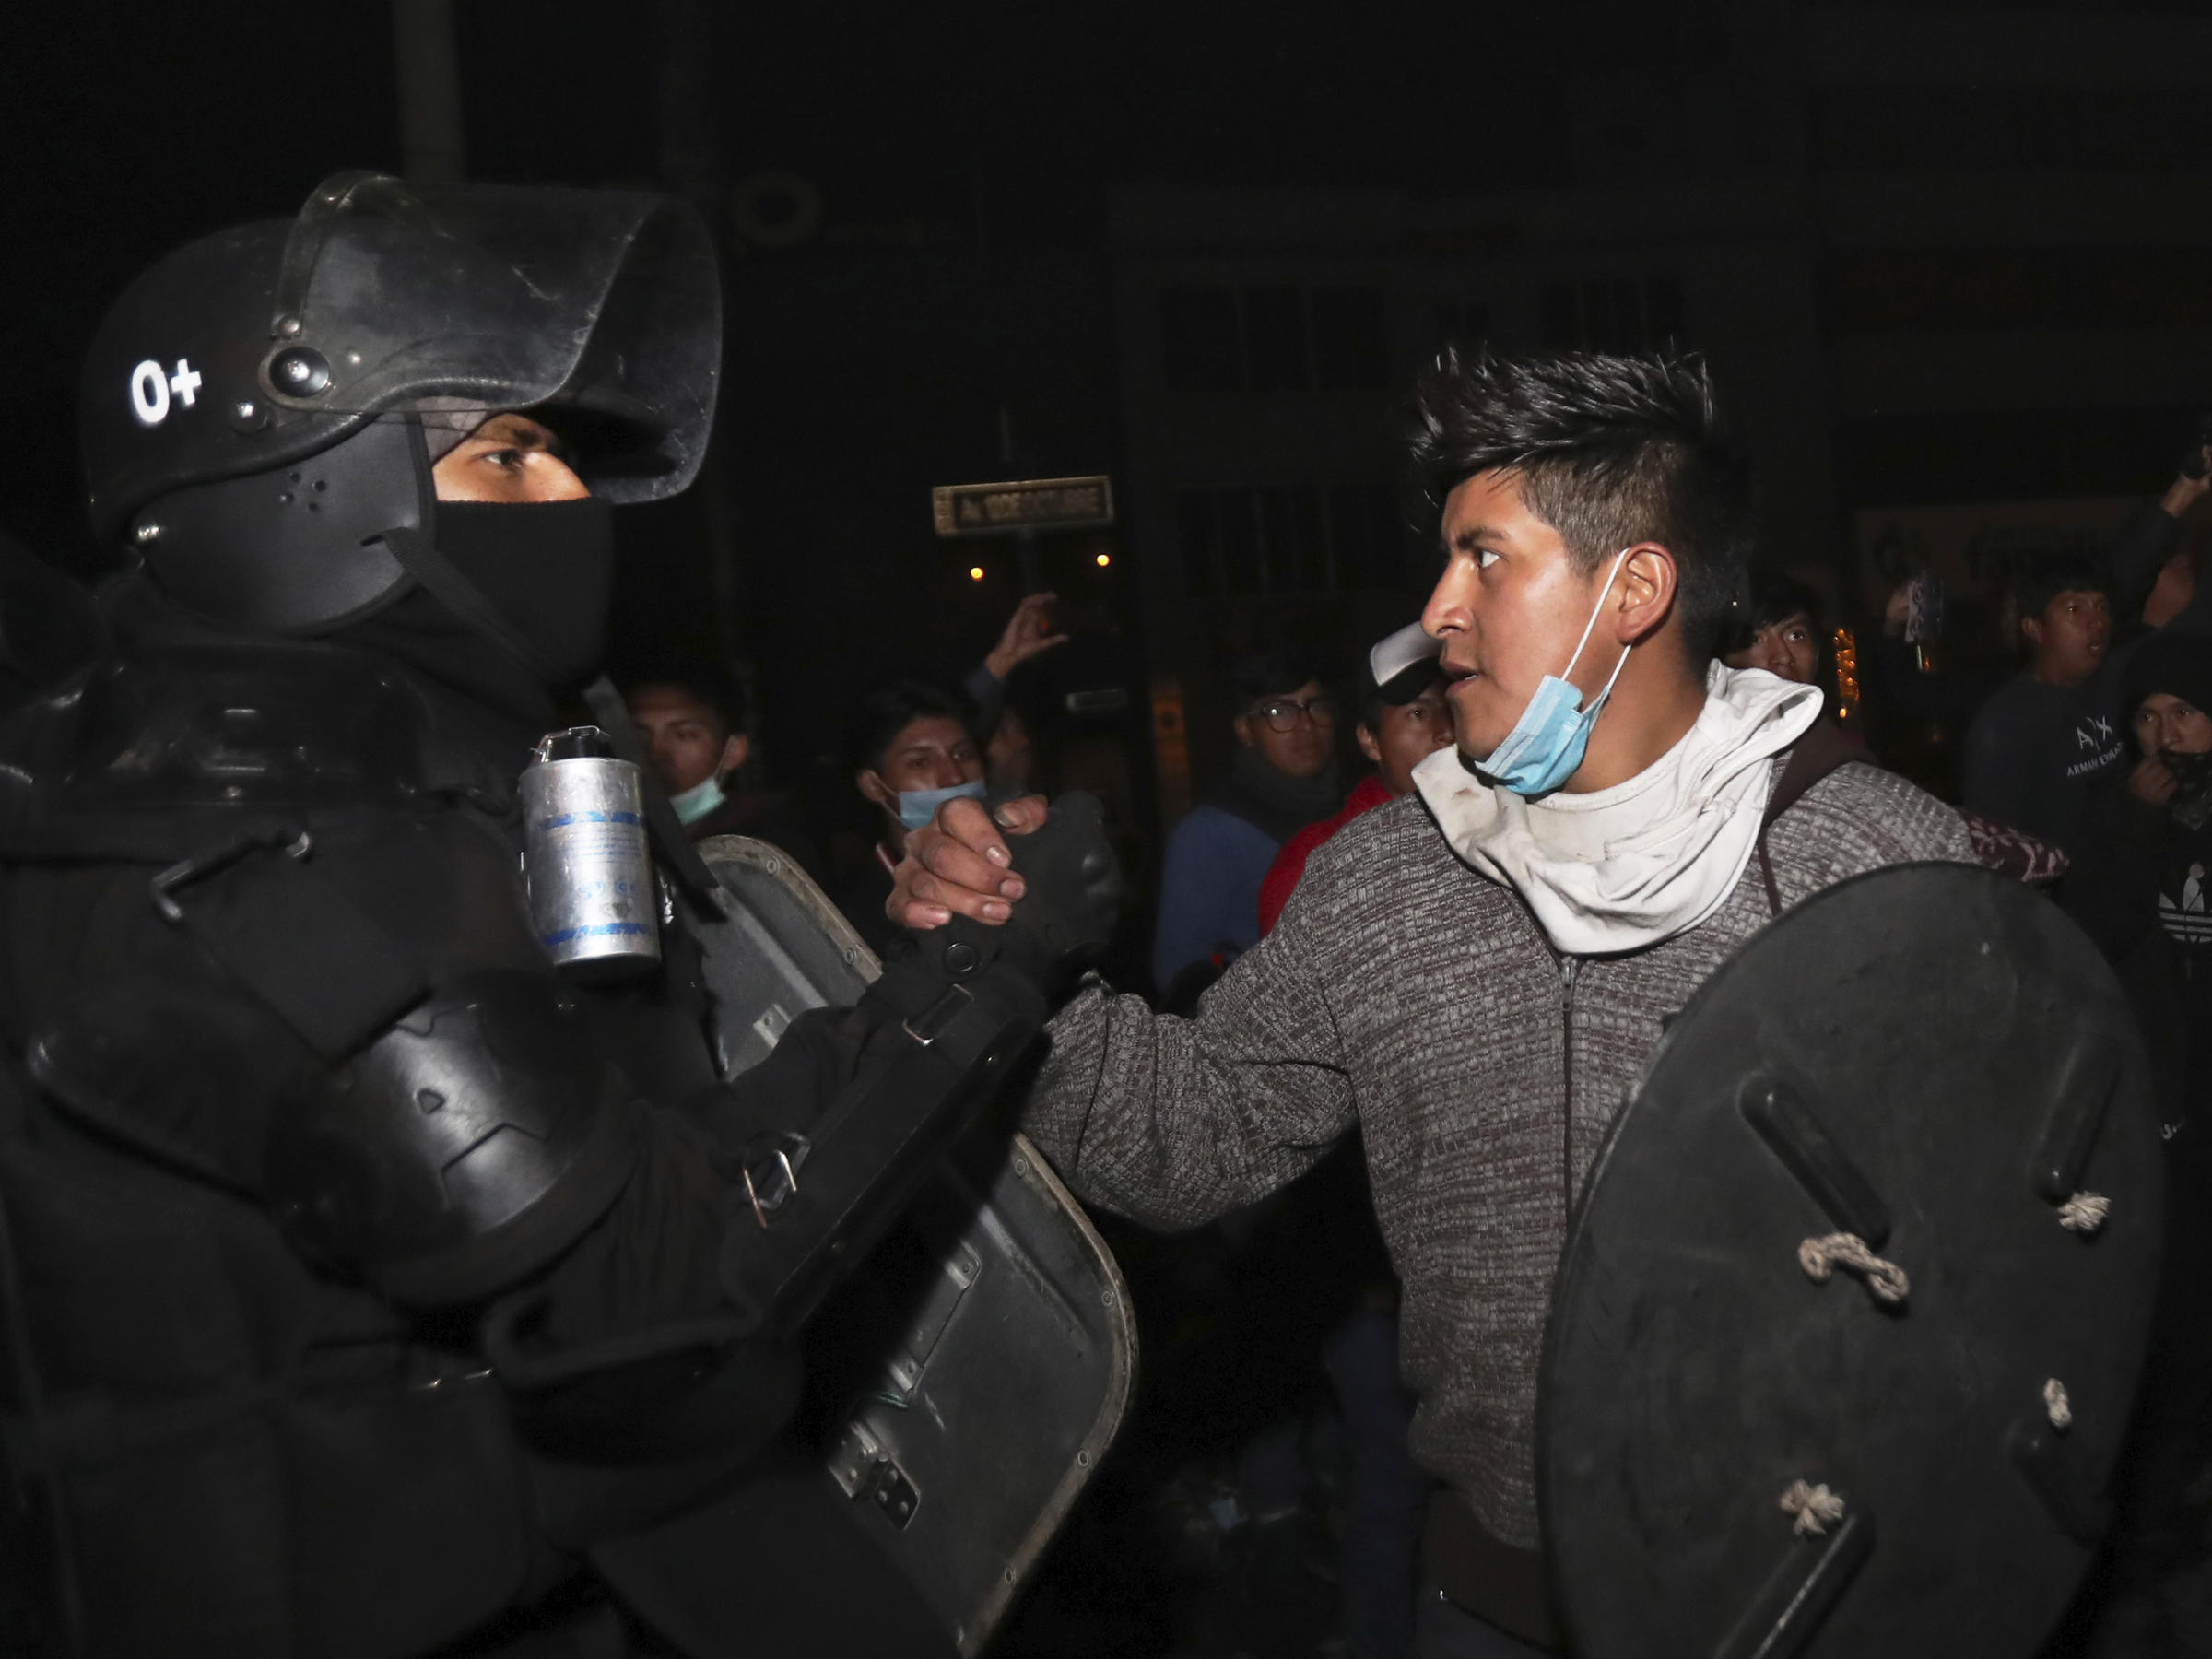 Ecuador Reaches Fuel Subsidy Deal To End Violent Protests